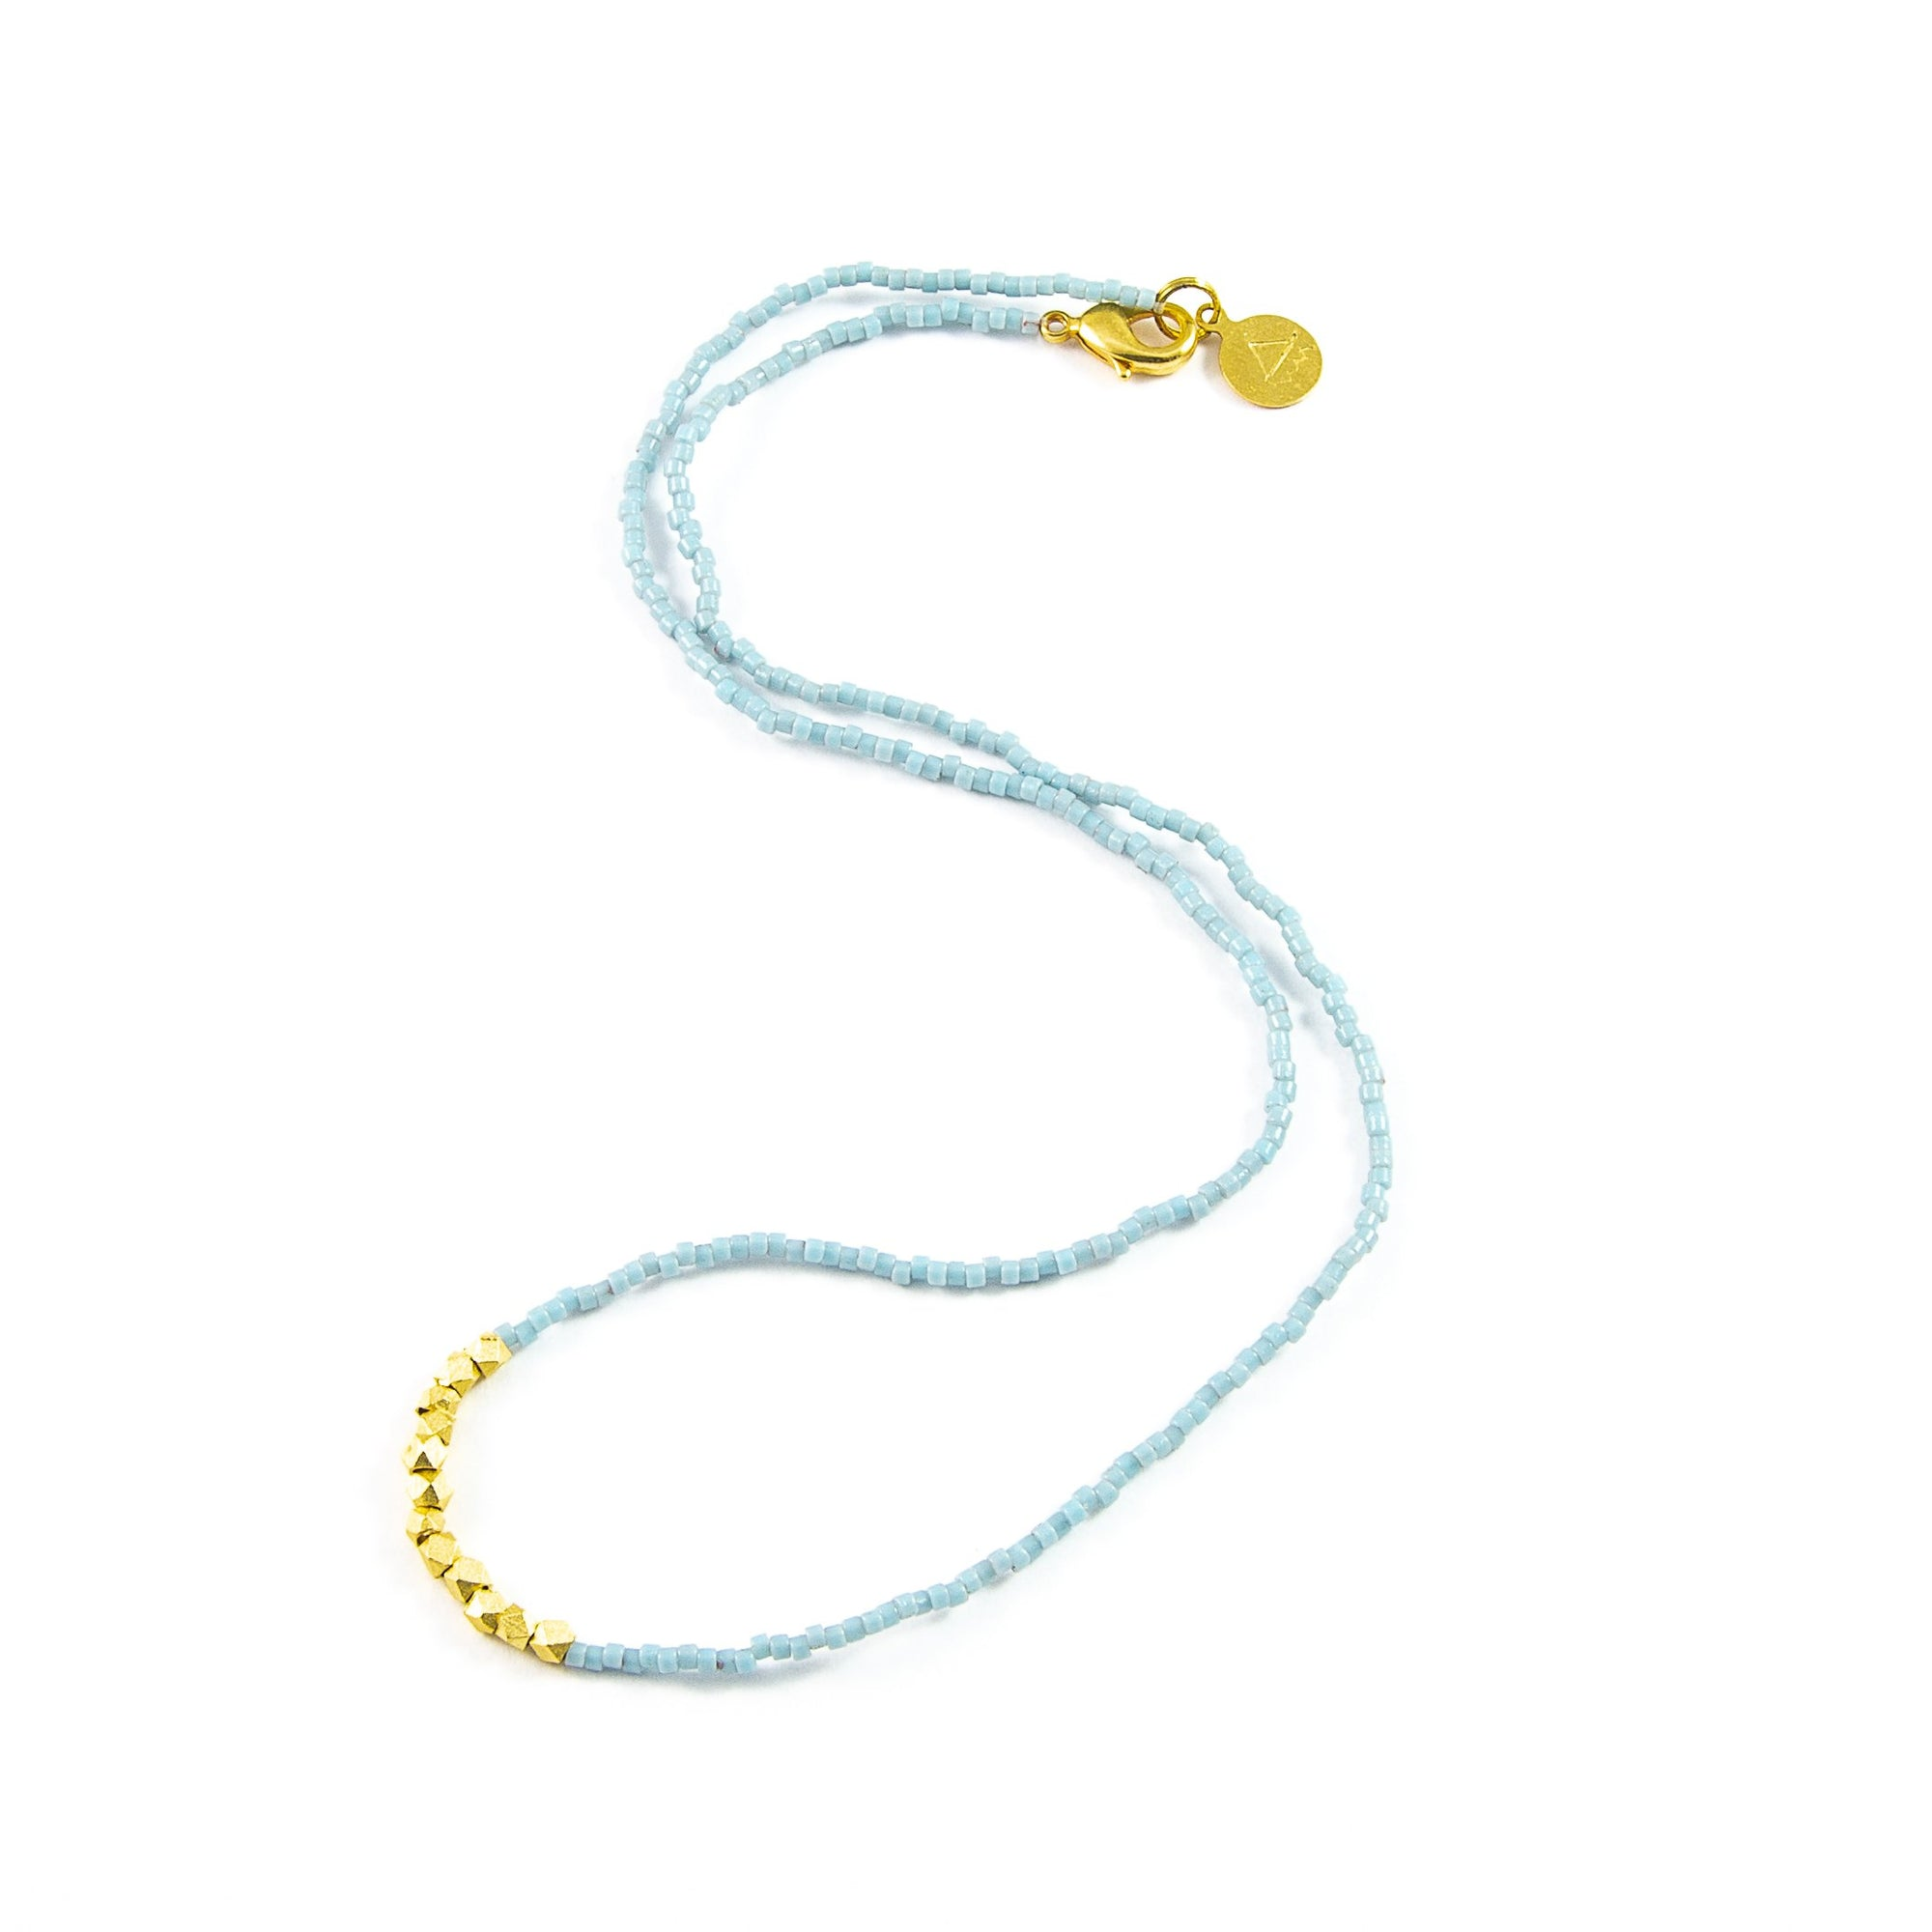 Stormy Ocean Day to Night Necklace in Gold